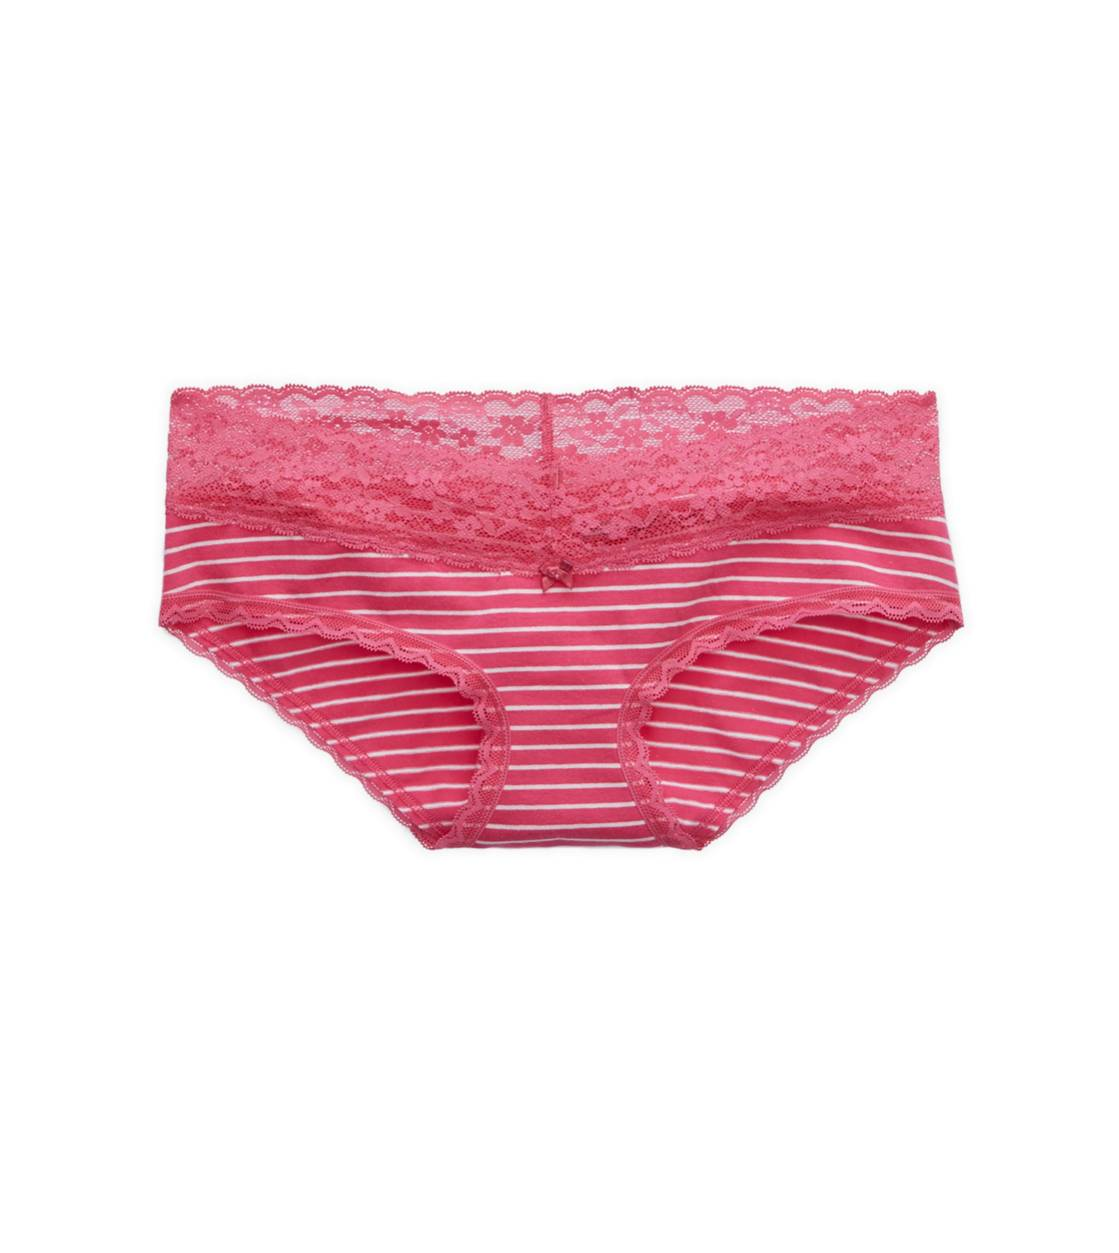 Sweetheart Aerie Lace Trim Boybrief